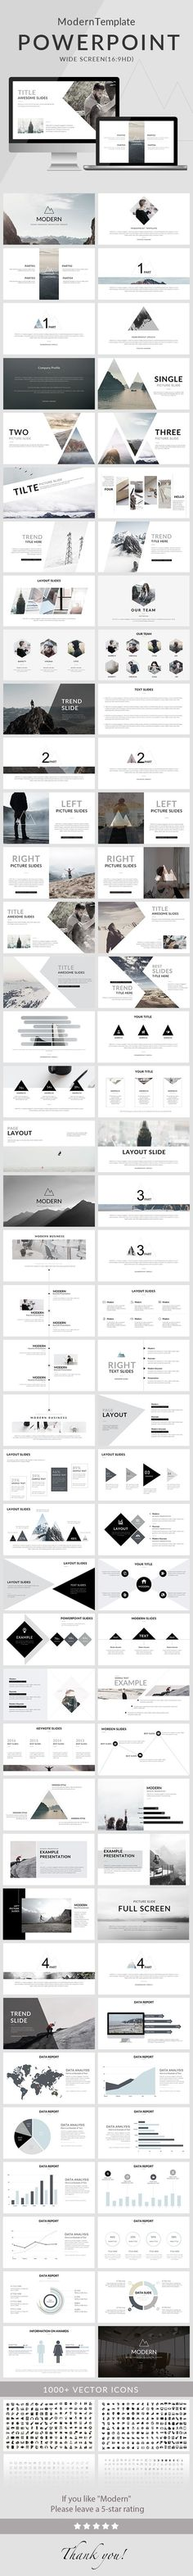 Nice and clean modern PowerPoint presentation template for creative presentations. 80 slides to emphasize the key points of the presentation and create a great impression on the viewers. Graphisches Design, Slide Design, Layout Design, Interior Design, Book Design, Design Model, Cover Design, Creative Design, Cv Inspiration